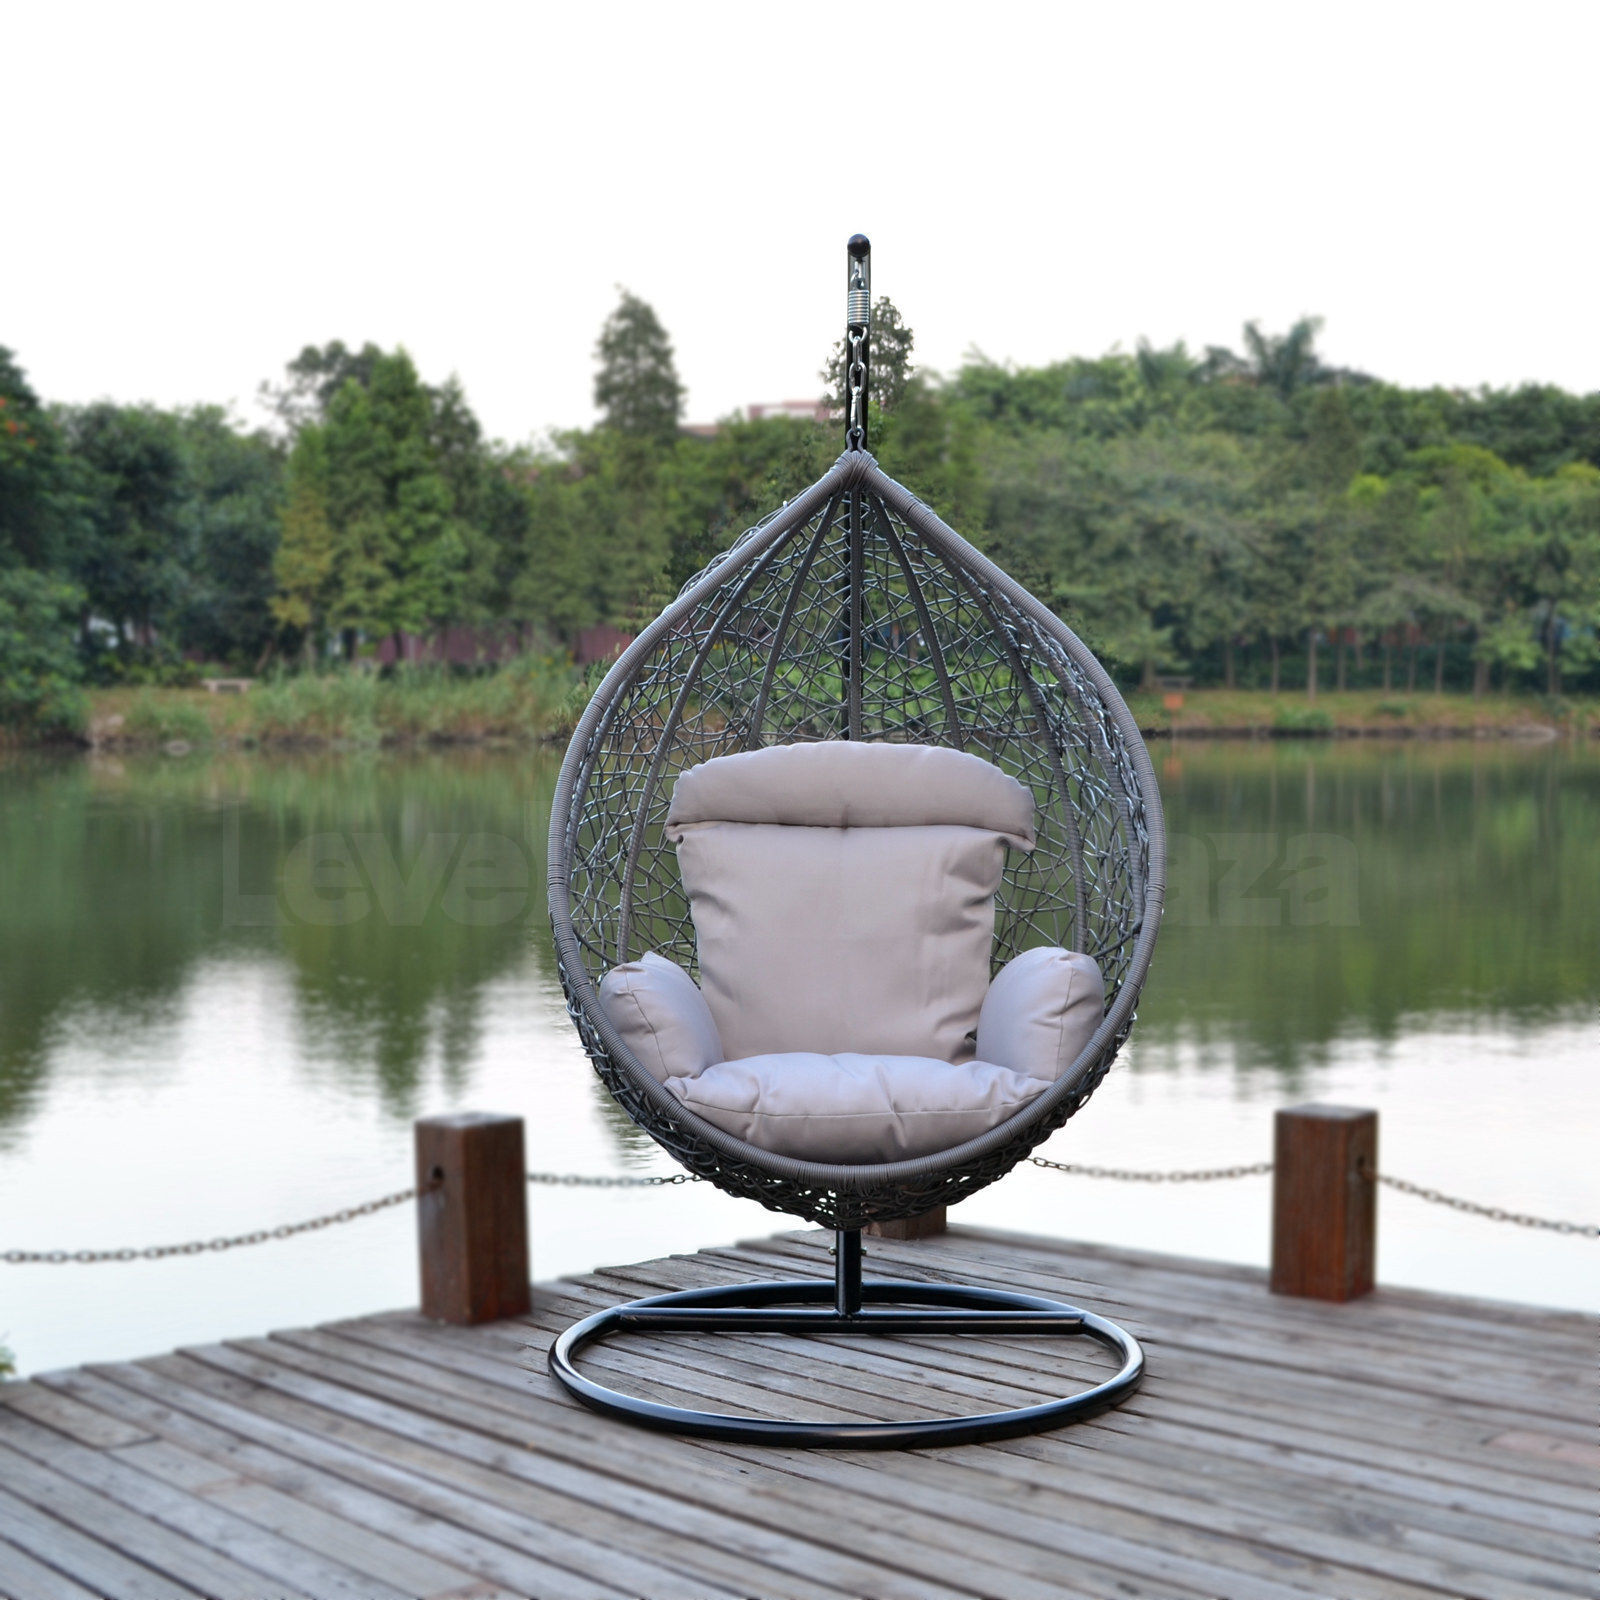 Outdoor Wicker Hanging Egg Chair Grey Wicker Egg Shape Swing Chair Outdoor Hanging Hammock